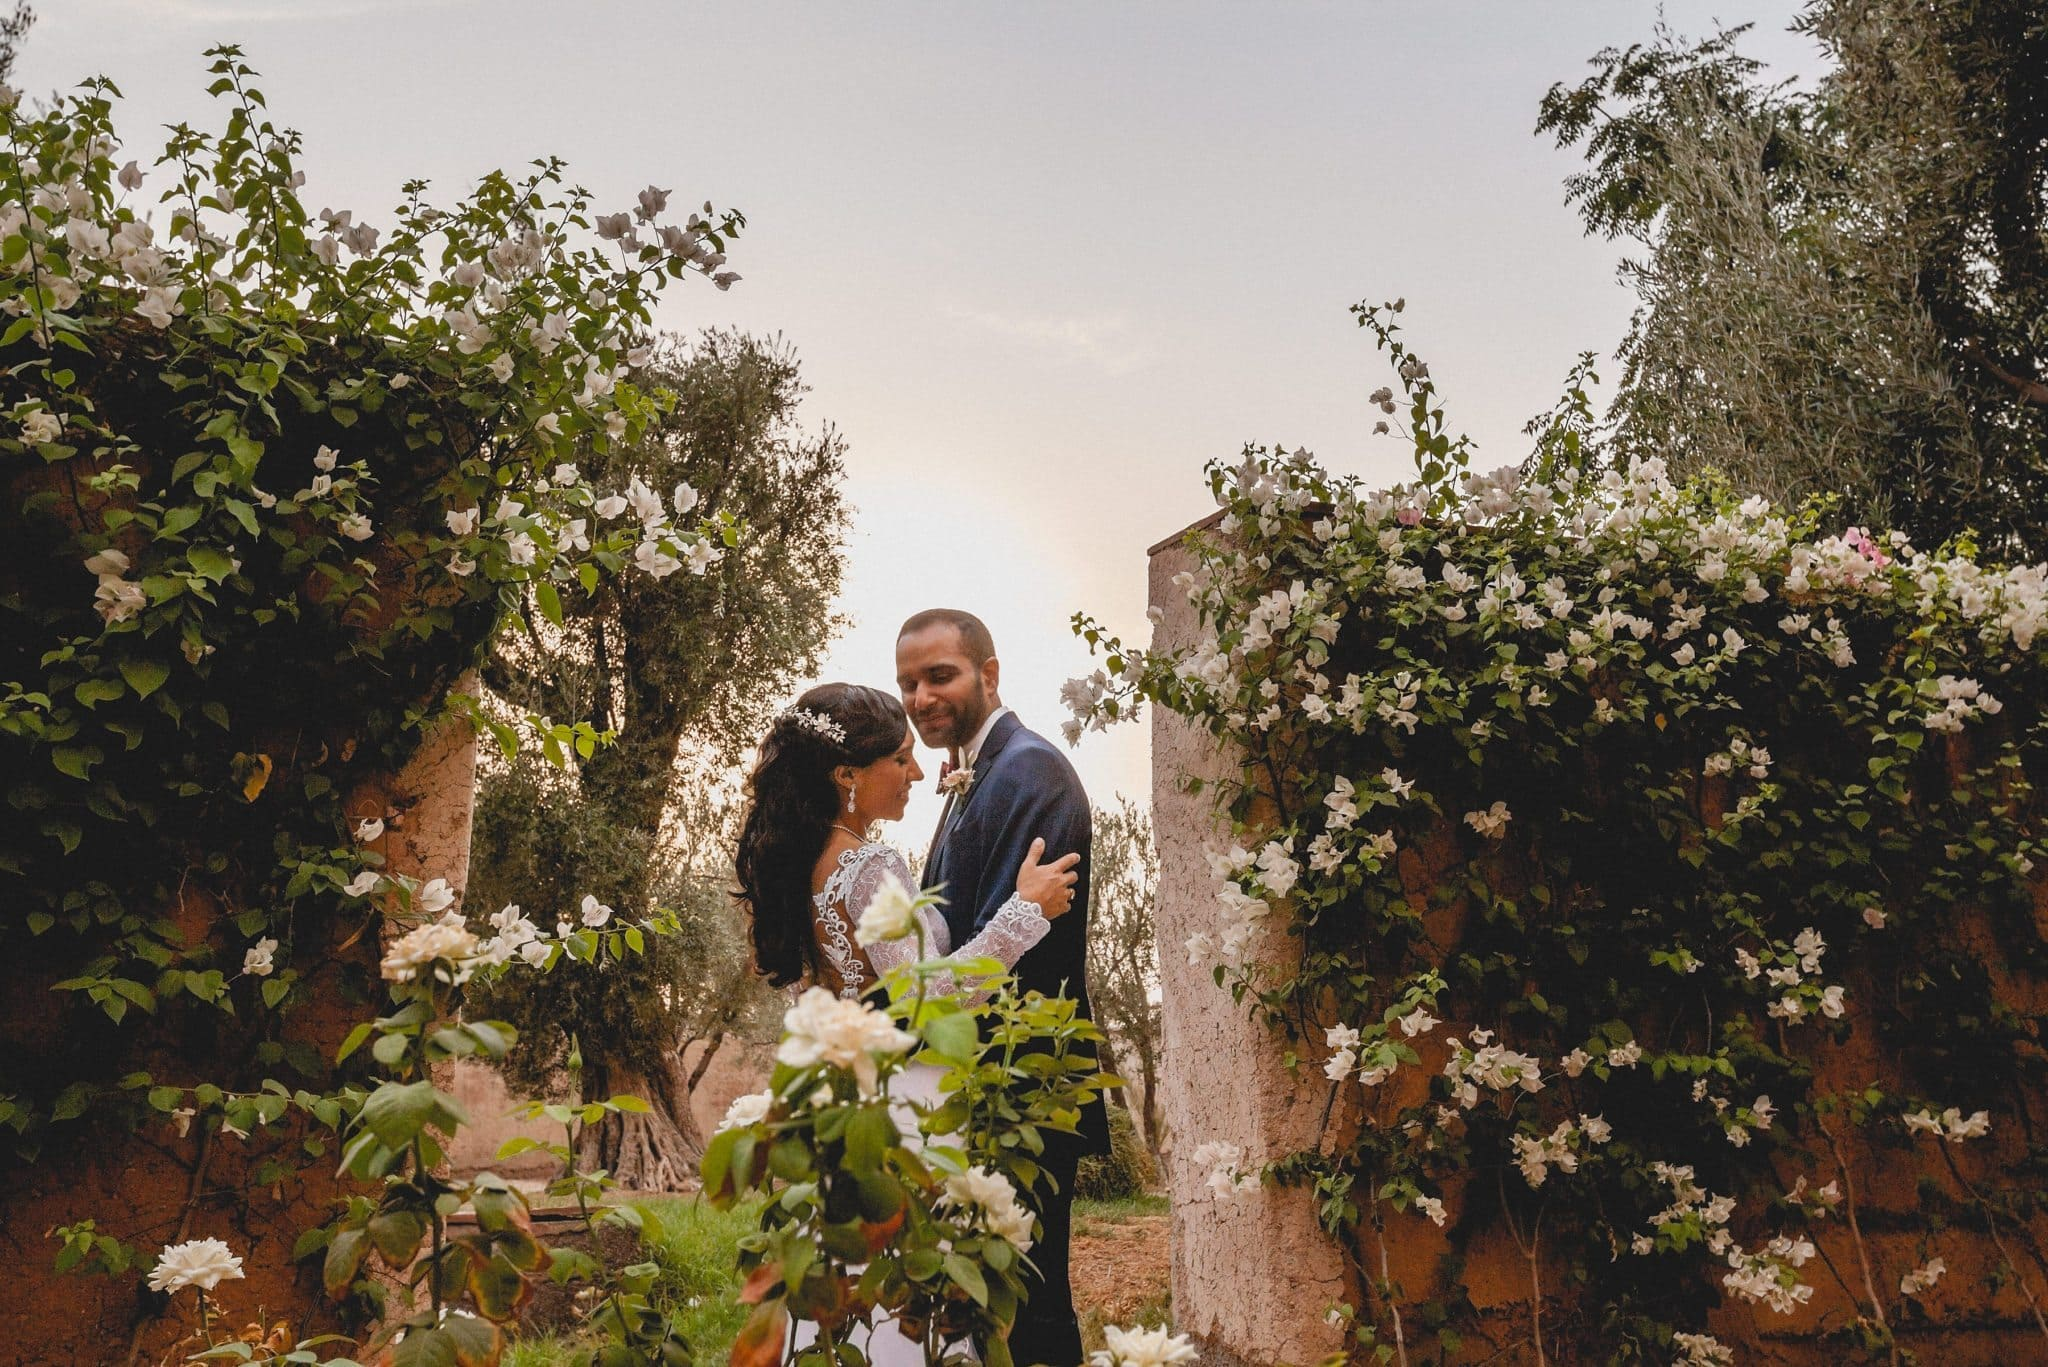 The bride and groom cuddle in the rose garden at their Ksar Char Bagh Luxury Marrakech Destination Wedding